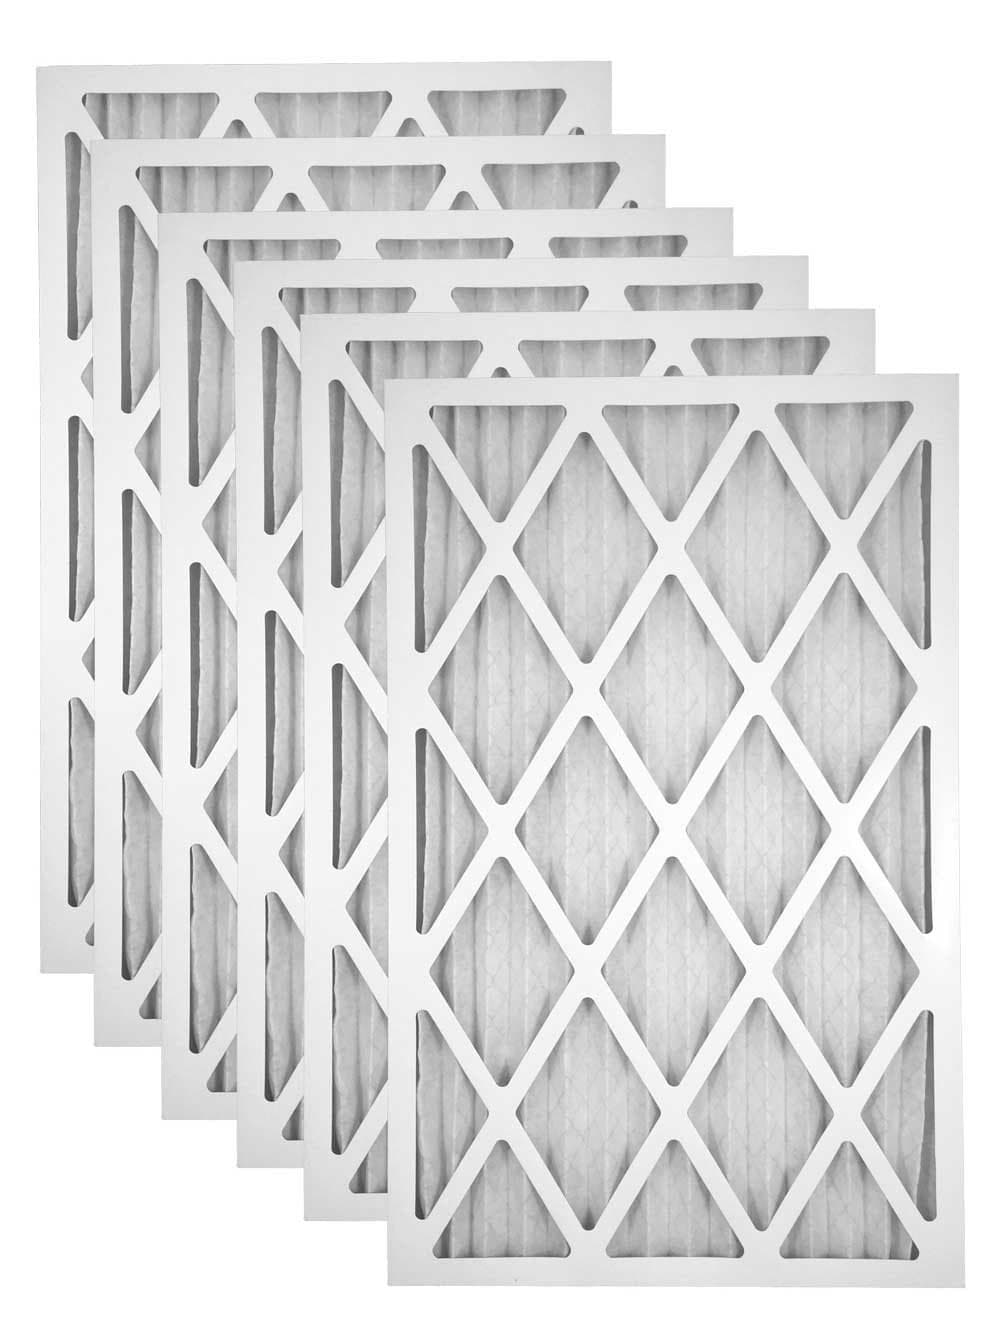 17x22x1 Merv 8 Pleated AC Furnace Filter - Case of 6